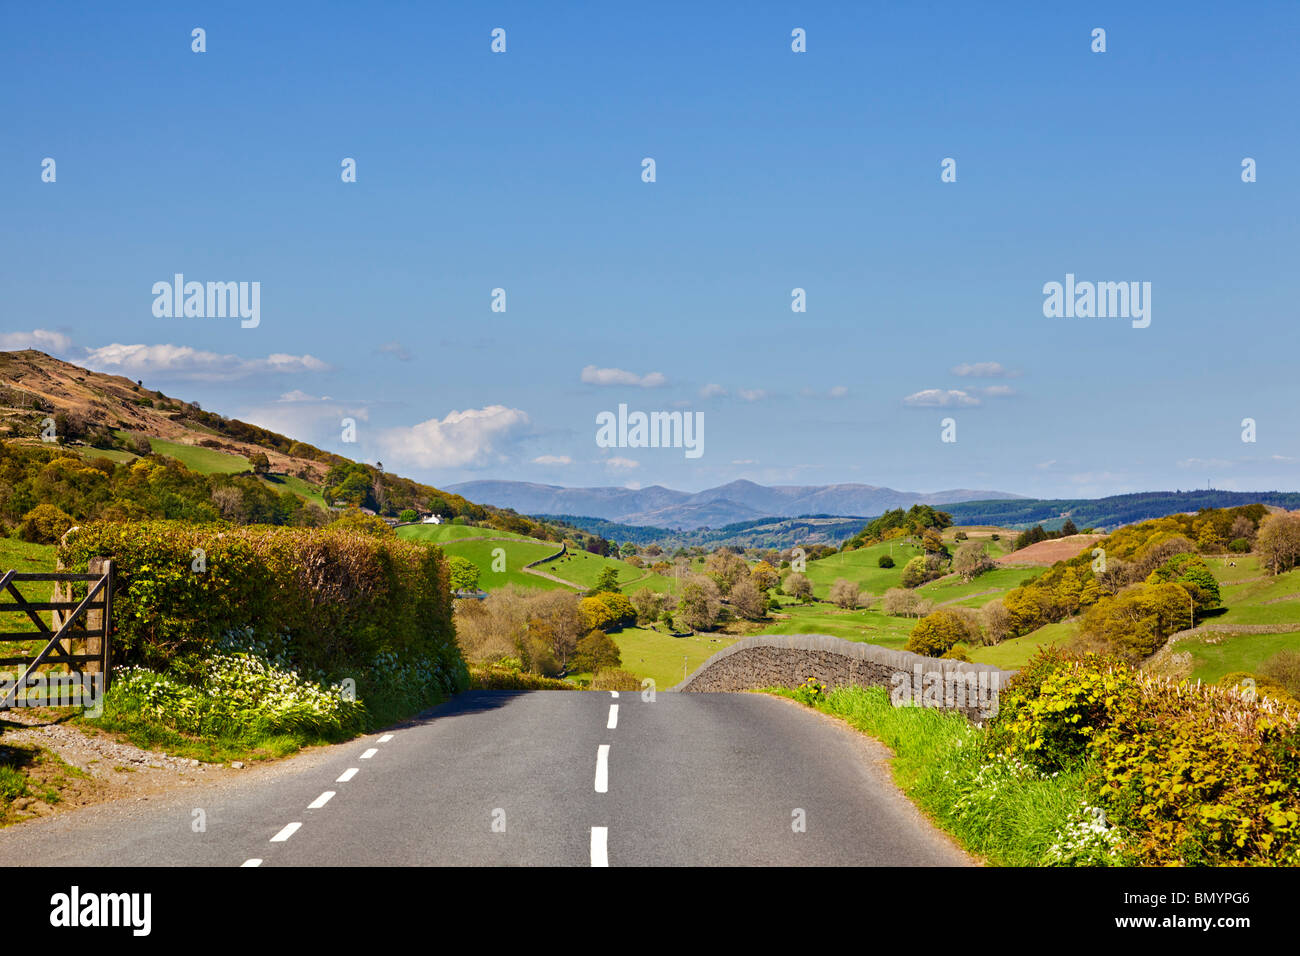 Country road, through English countryside towards the Lake District mountains on a road trip in Cumbria, England, - Stock Image